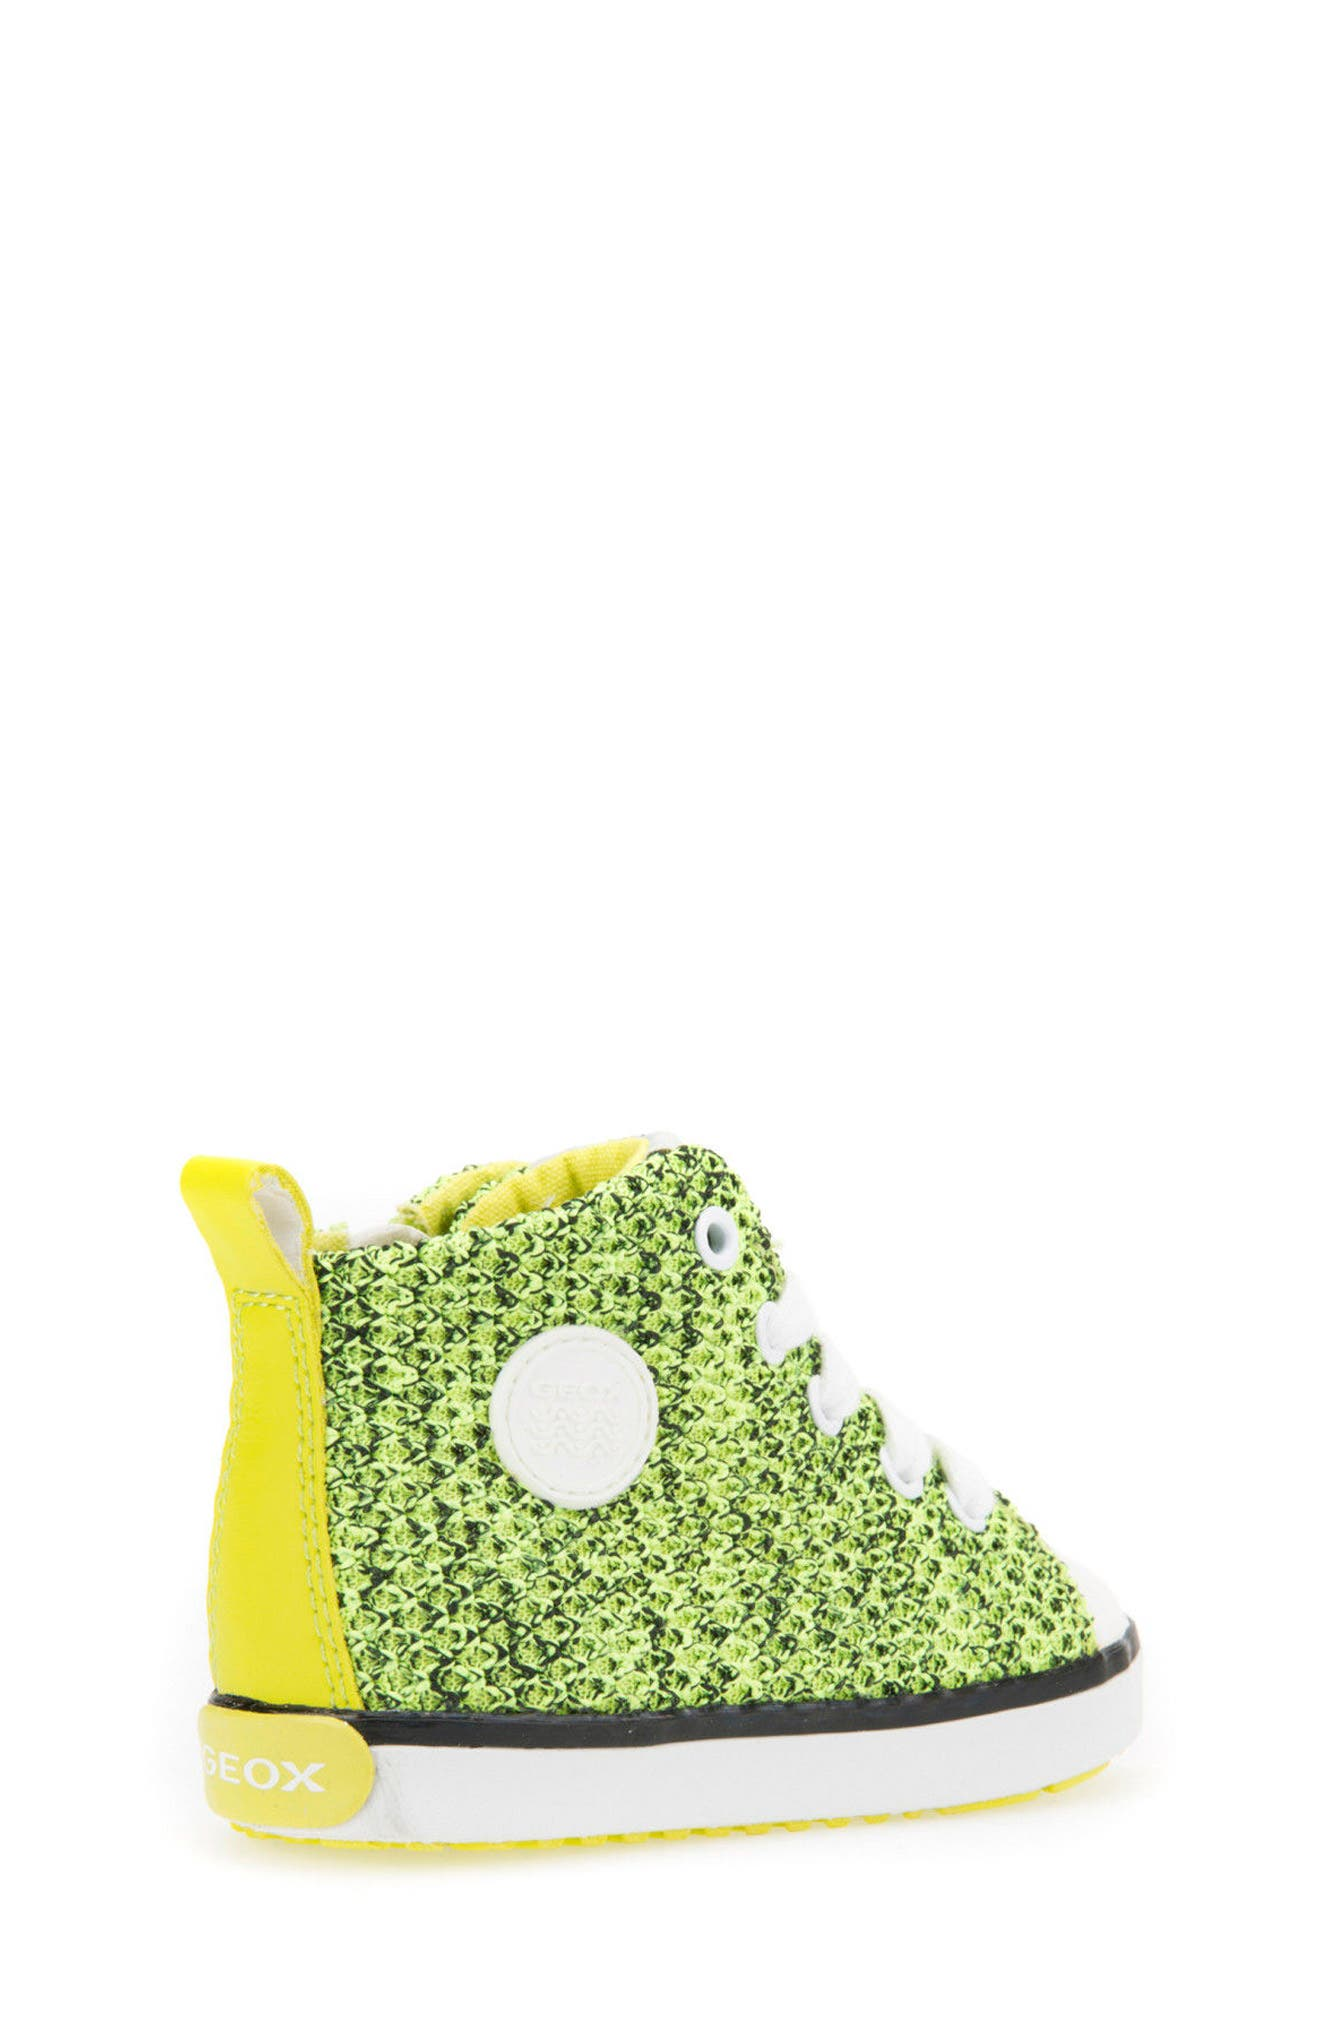 Kilwi Knit High Top Sneaker,                             Alternate thumbnail 2, color,                             LIME GREEN